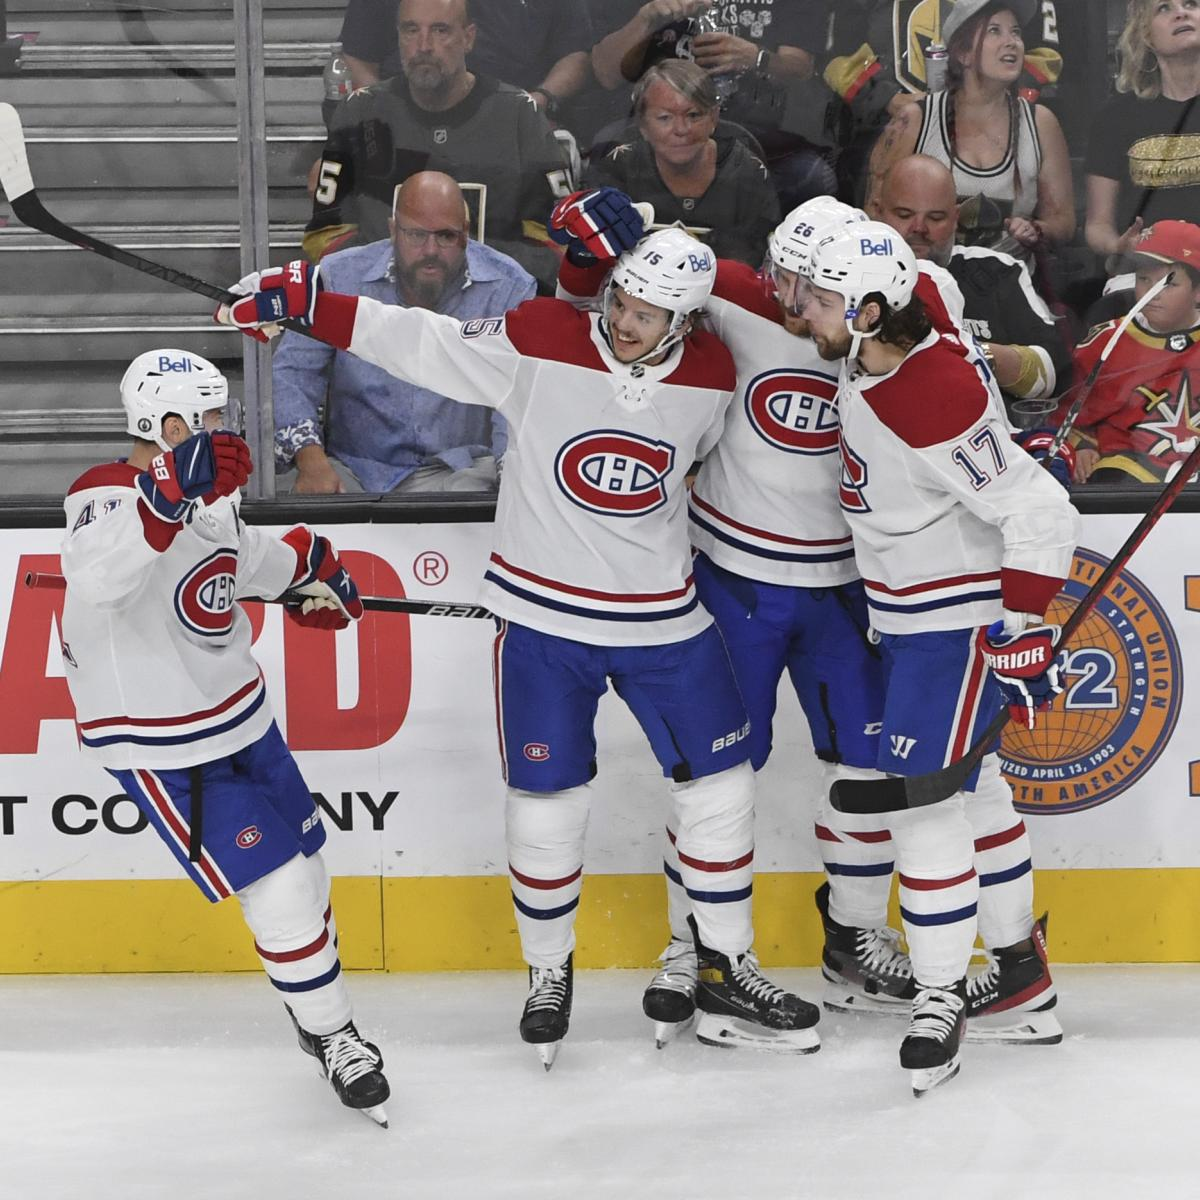 Canadiens Eliminate Golden Knights, Advance to 1st Stanley Cup Final Since 1993